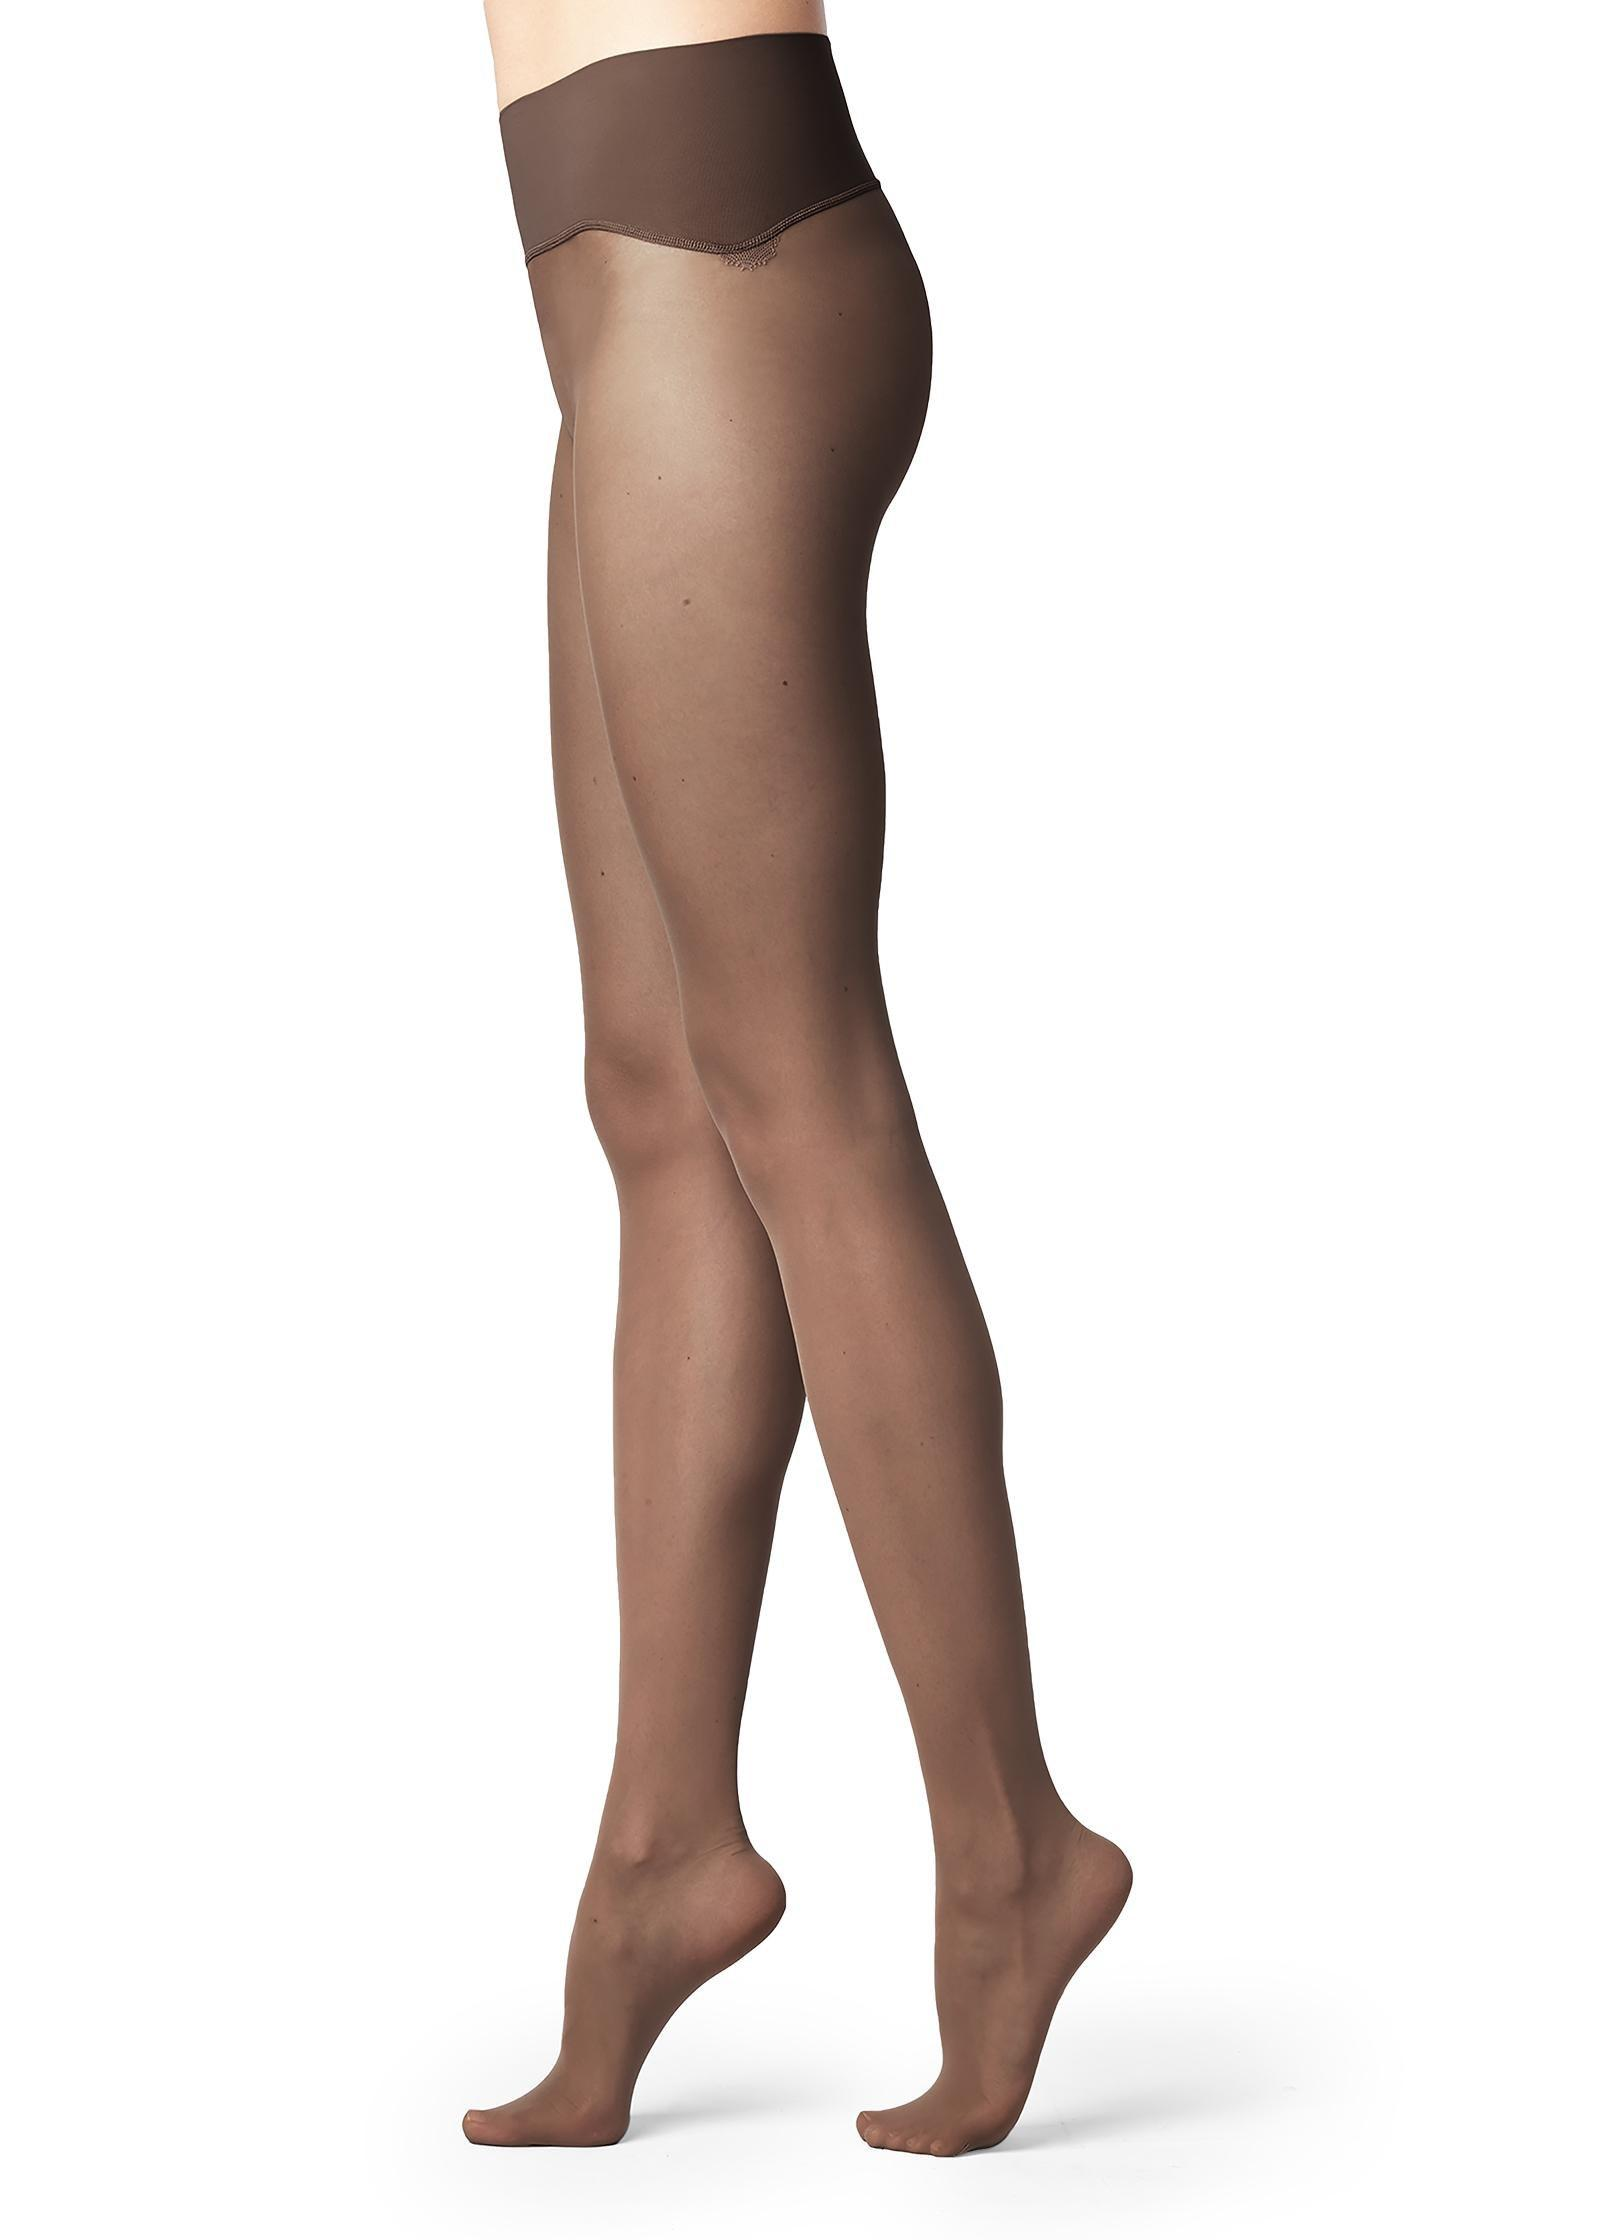 1d1d69a37 Calzedonia 20 Denier Seamless Totally Invisible Sheer Tights in ...